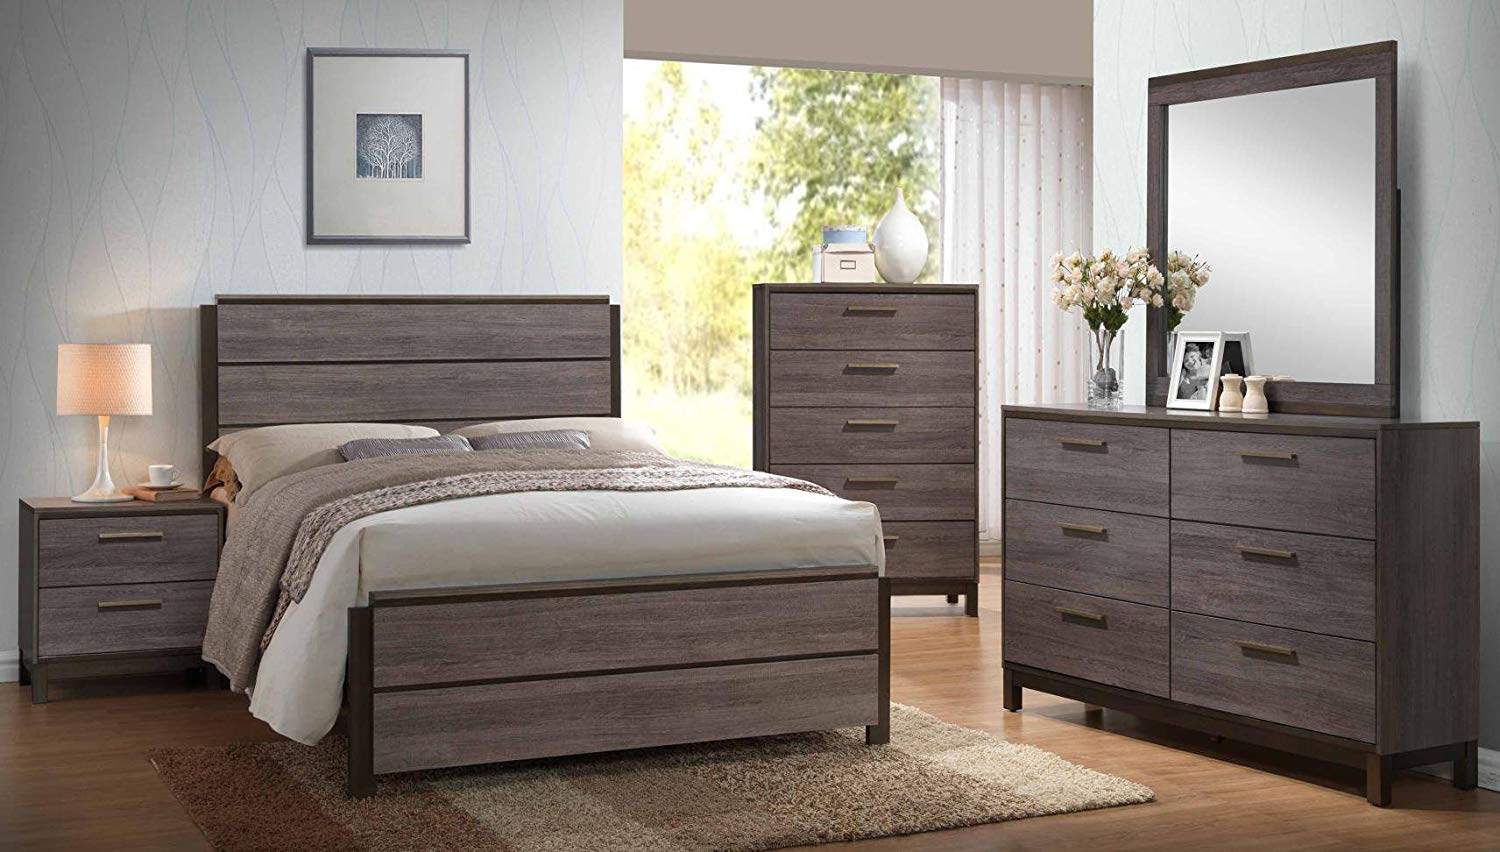 8 Best-Selling Bedroom Furniture Sets on Amazon  Real Simple